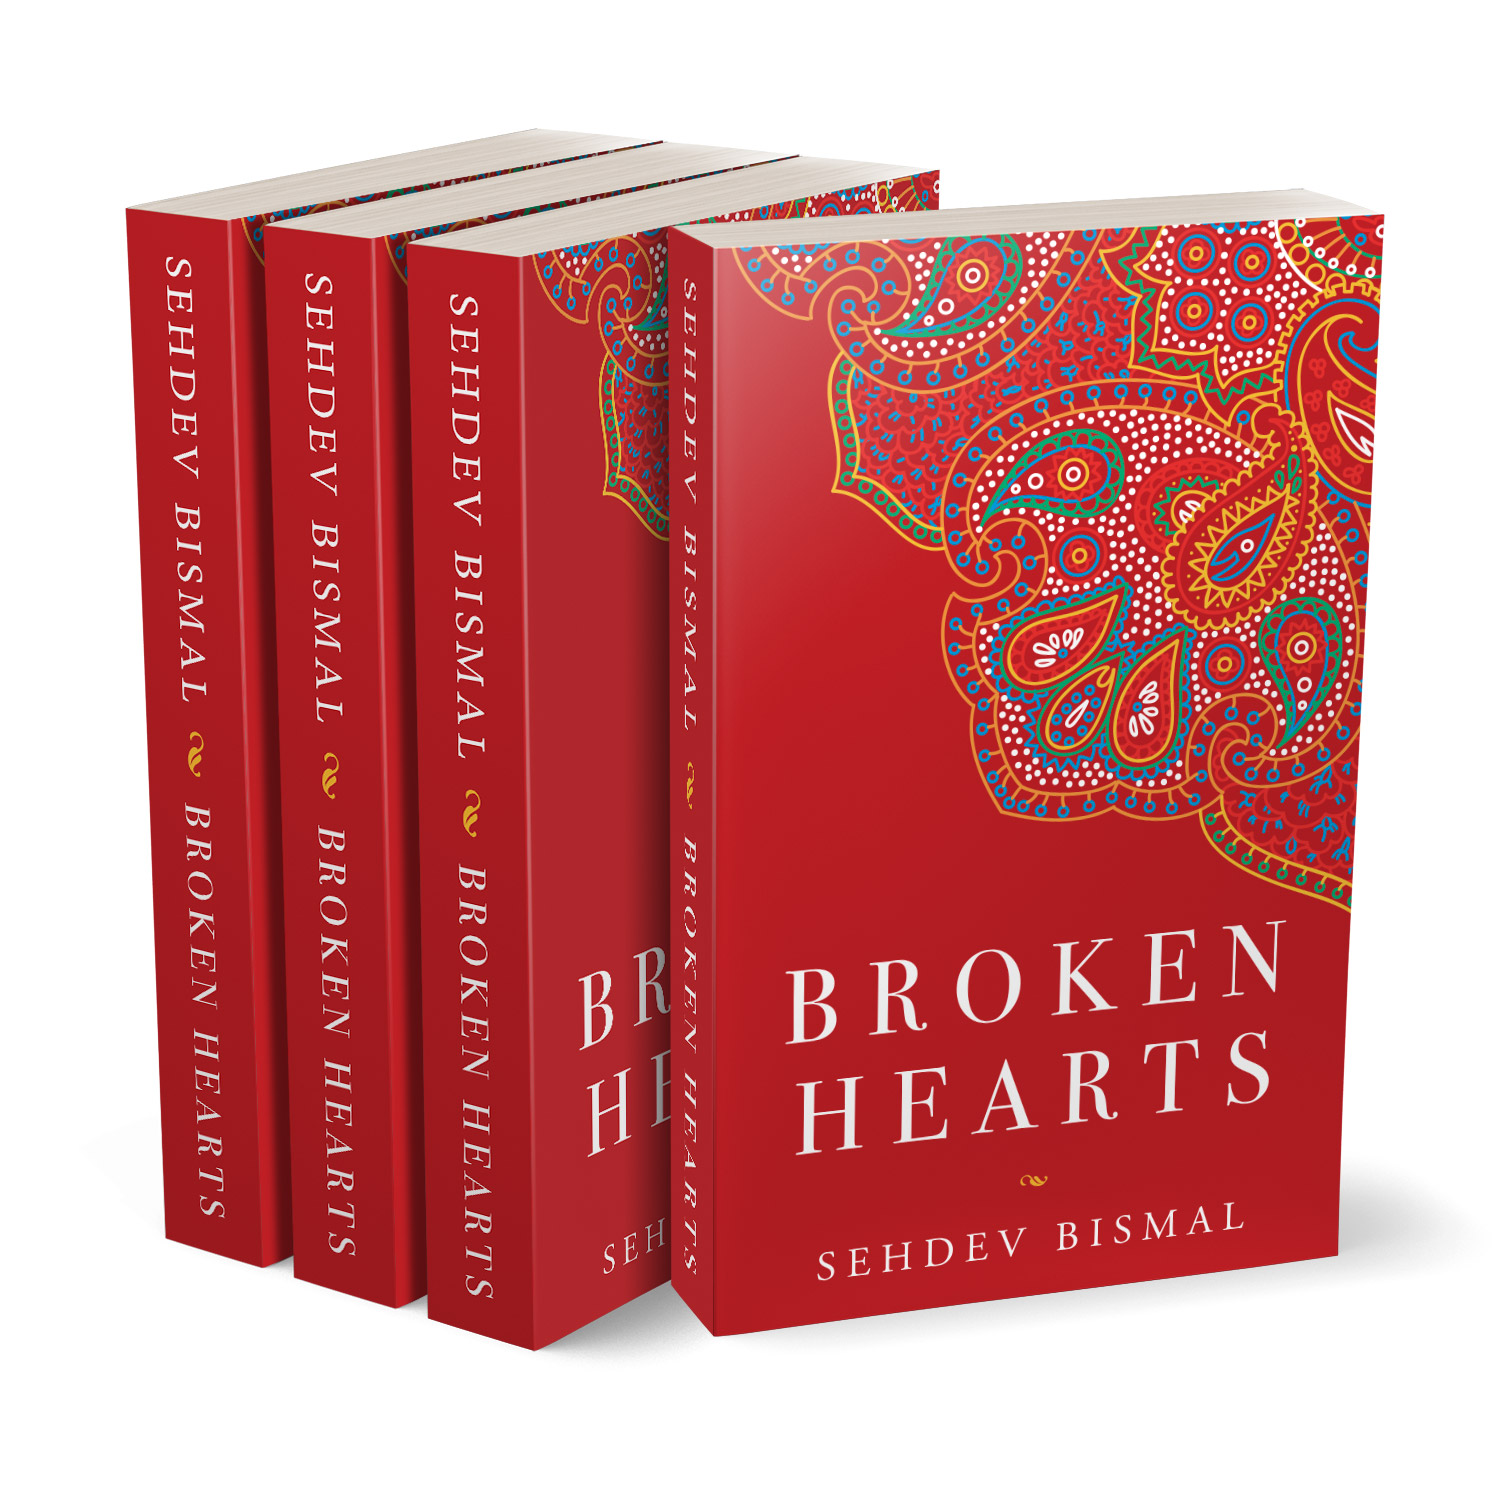 'Broken Hearts' is a heartfelt romantic drama, of love and loss. The author is Sehdev Bismal. The book cover design and interior formatting are by Mark Thomas. To learn more about what Mark could do for your book, please visit coverness.com.